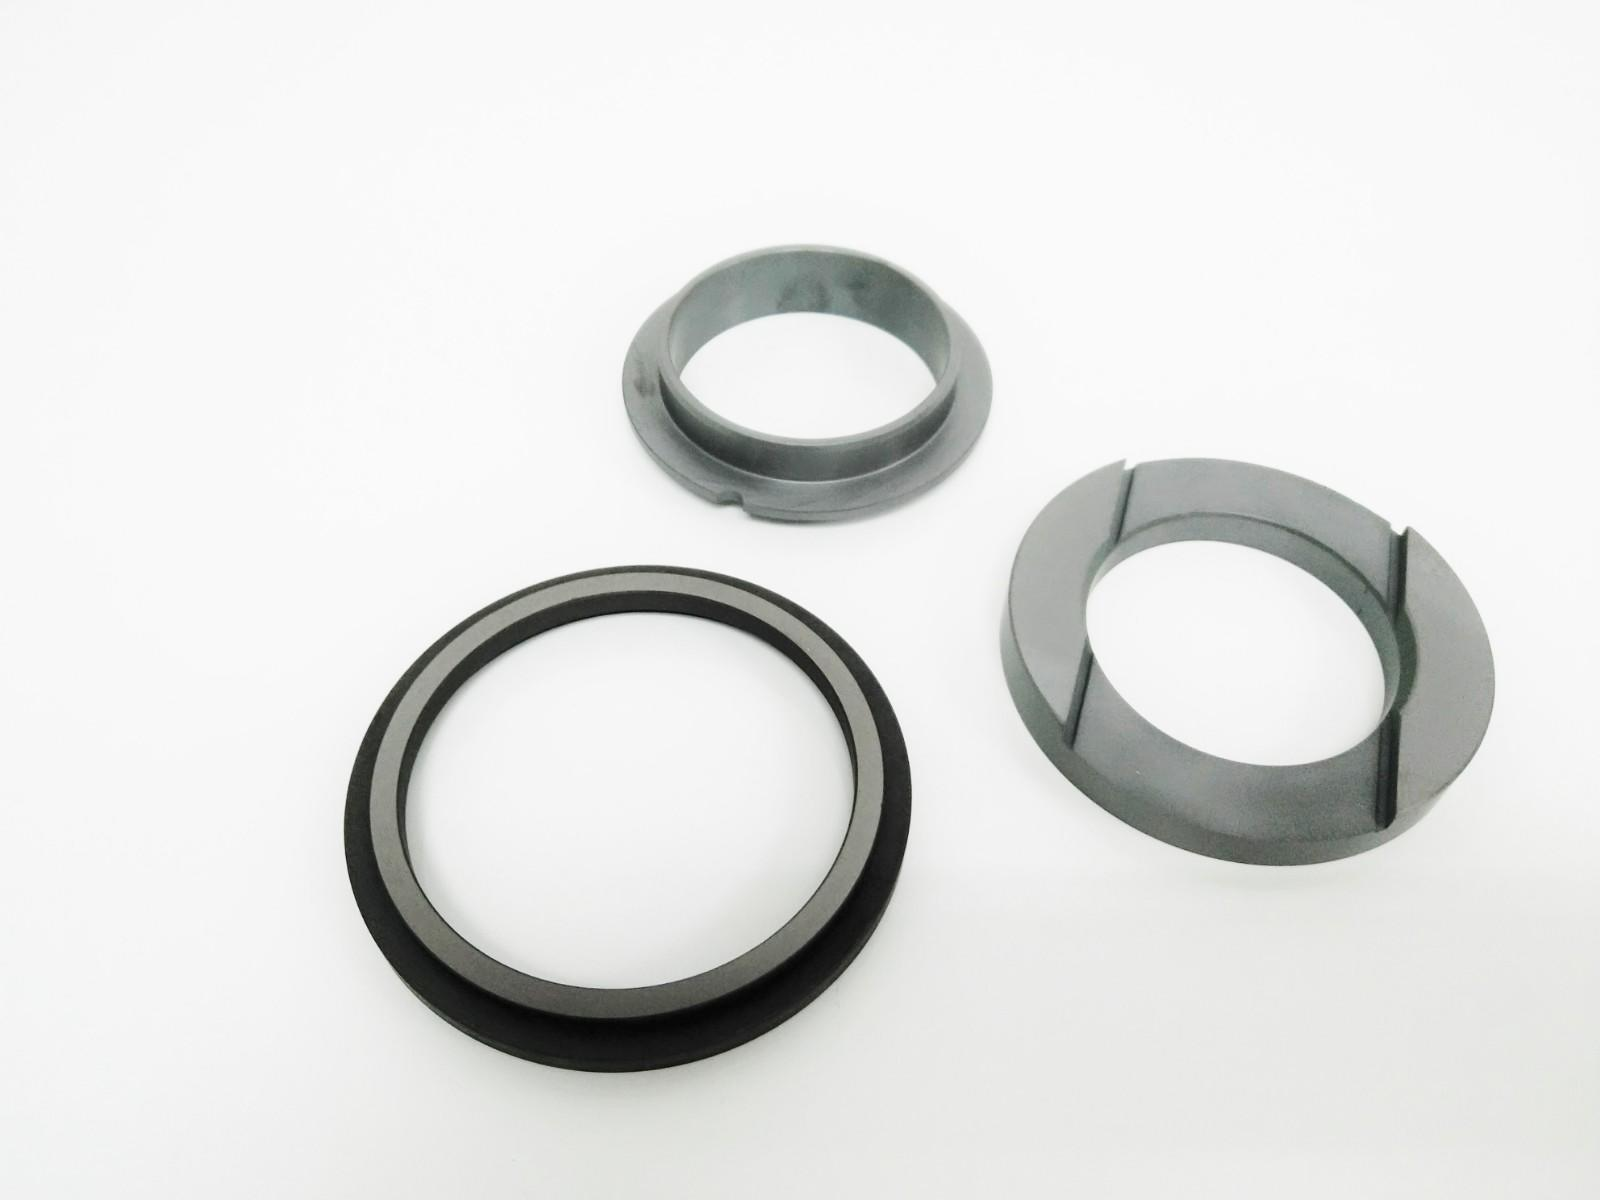 Lepu replacement Mechanical Seal for Fristam Pump OEM for high-pressure applications